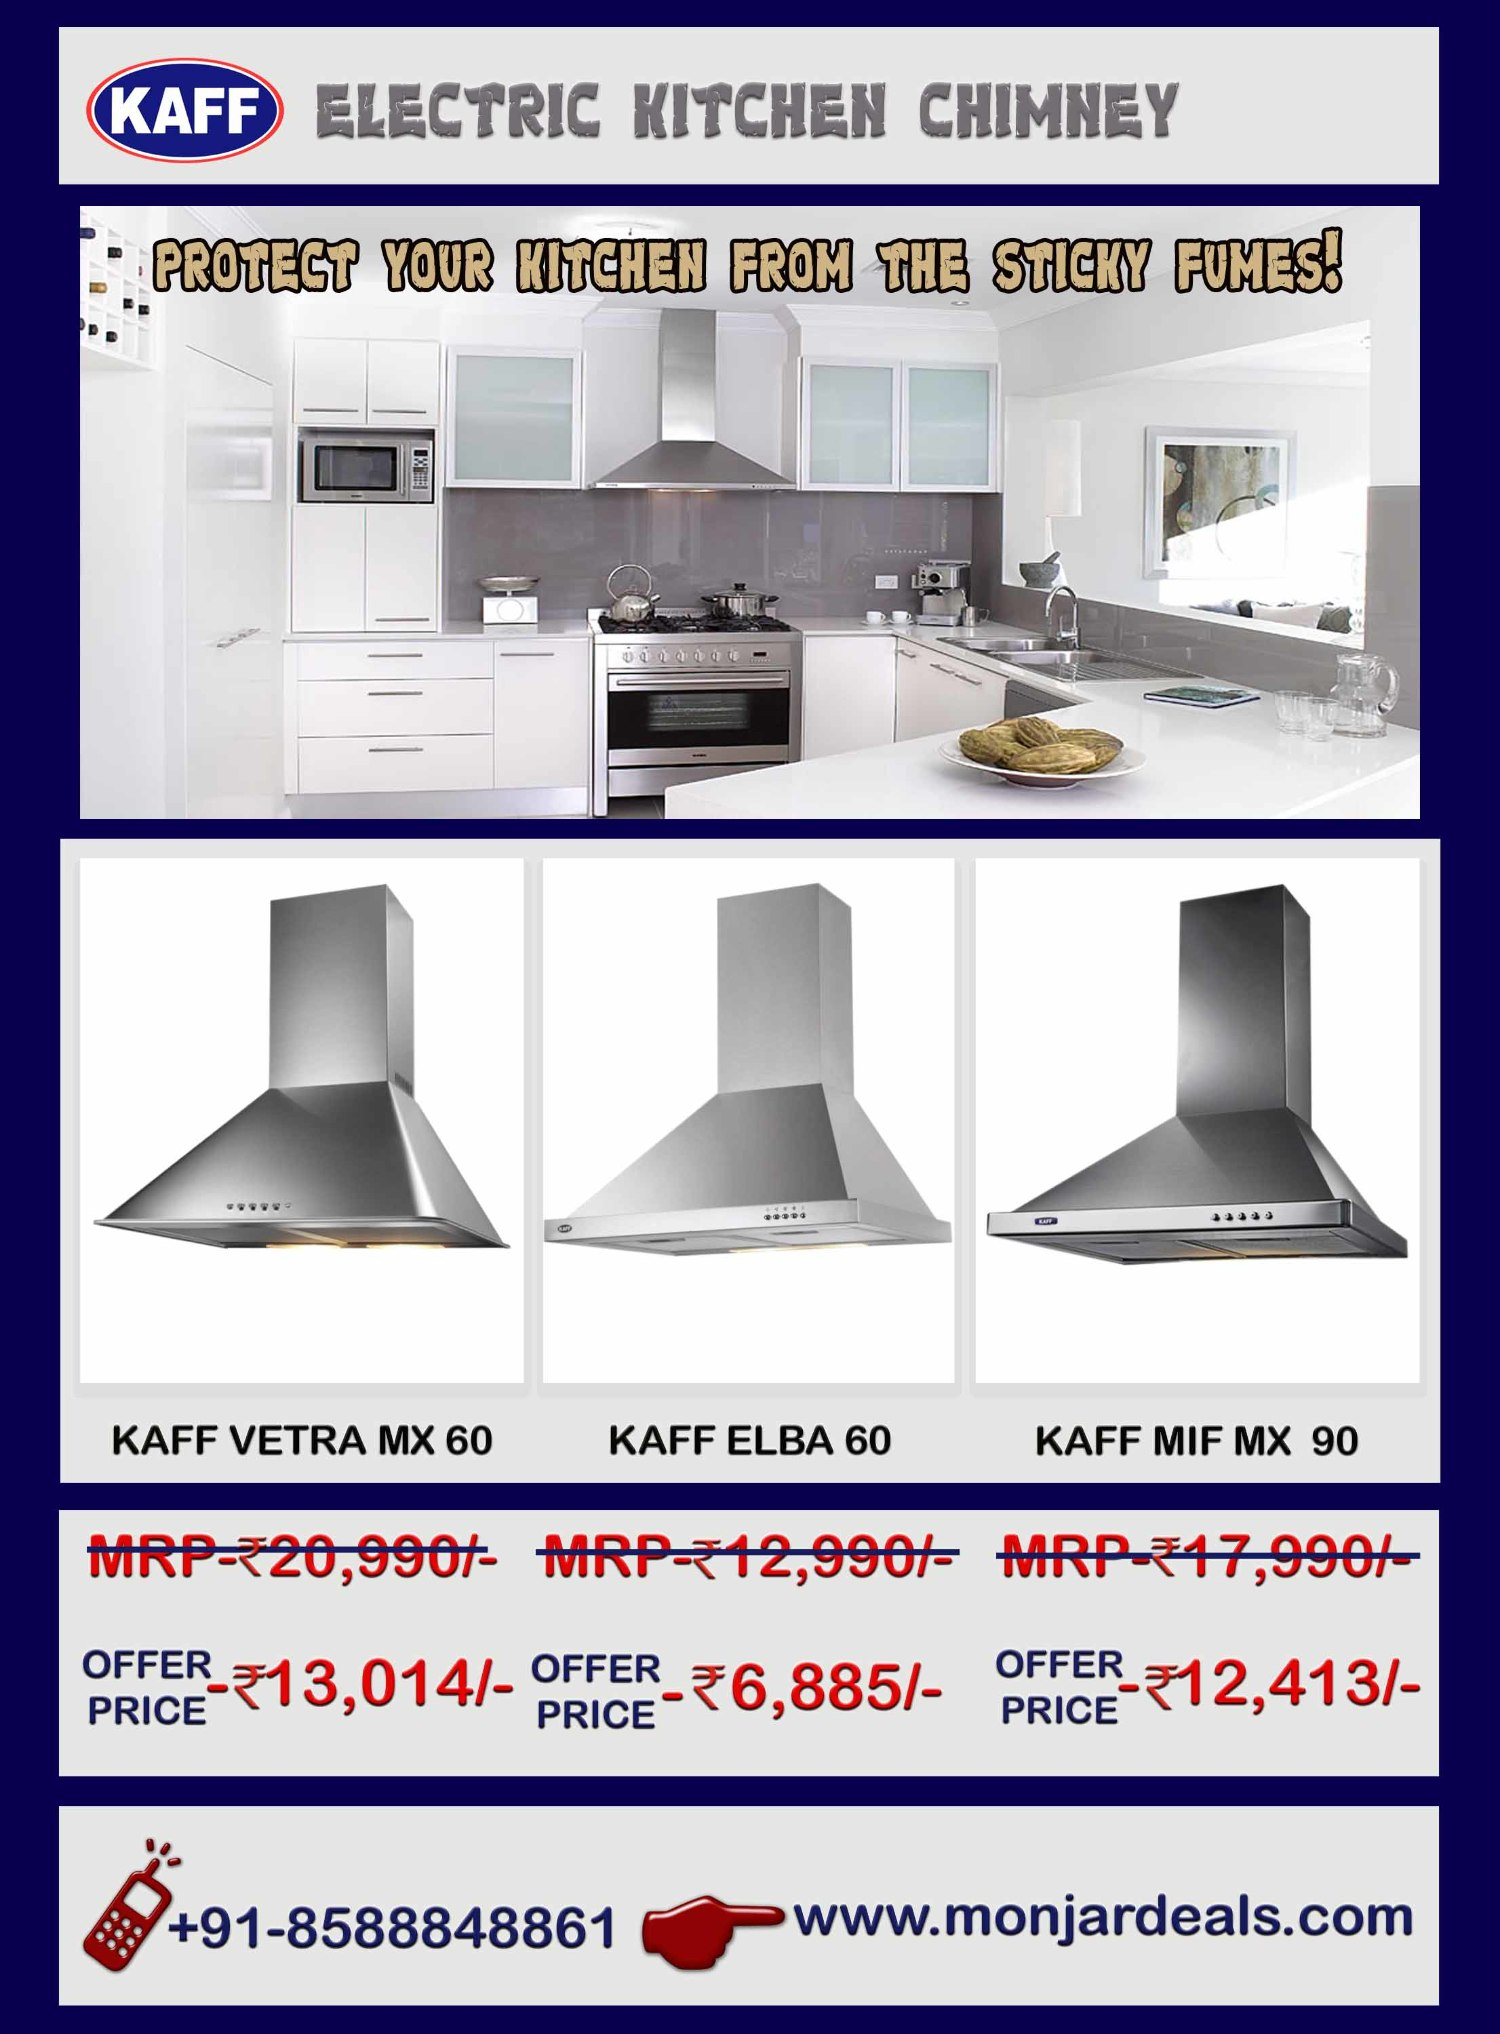 i21ilni14ub7oev2.D.0.kaff-electric-kitchen-chimney-online-shopping-price.jpg